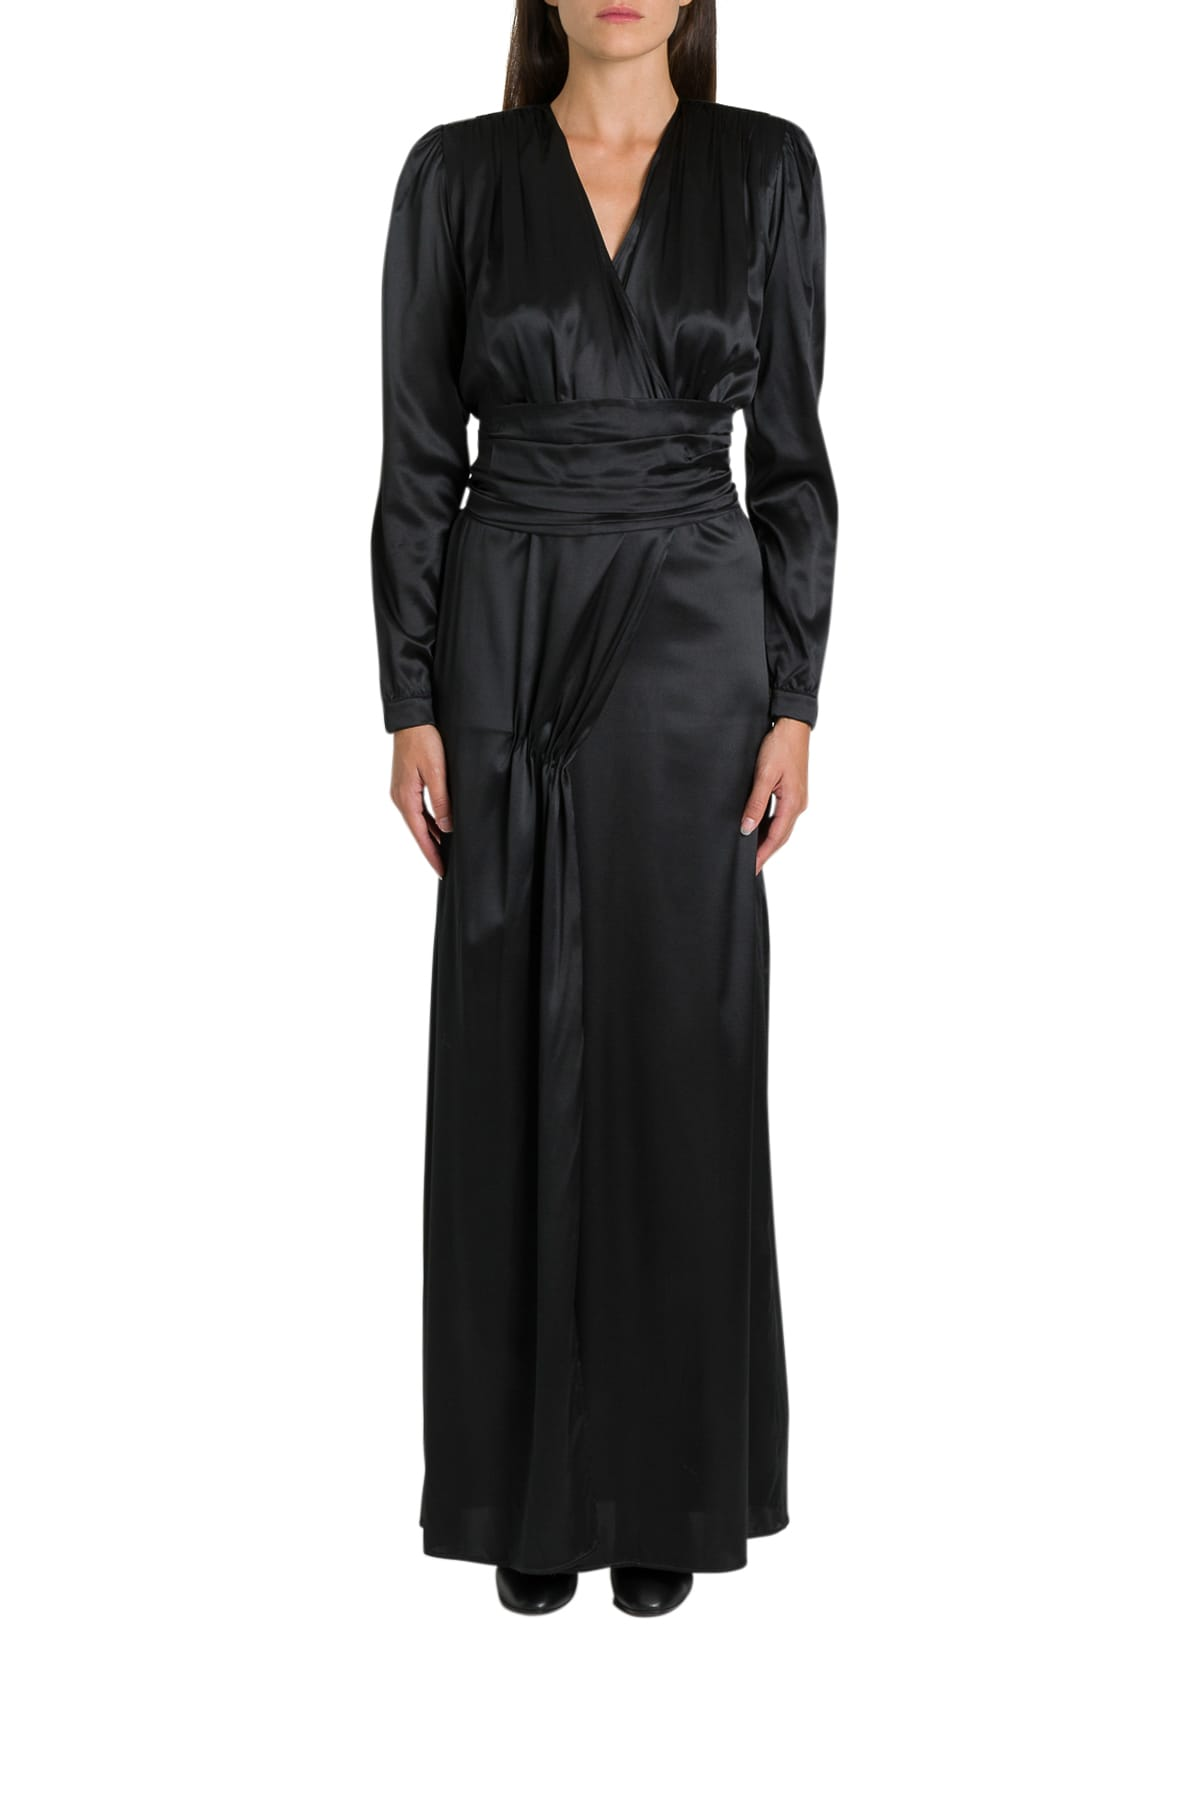 Federica Tosi Long Silk Satin Dress With Sash On Waist